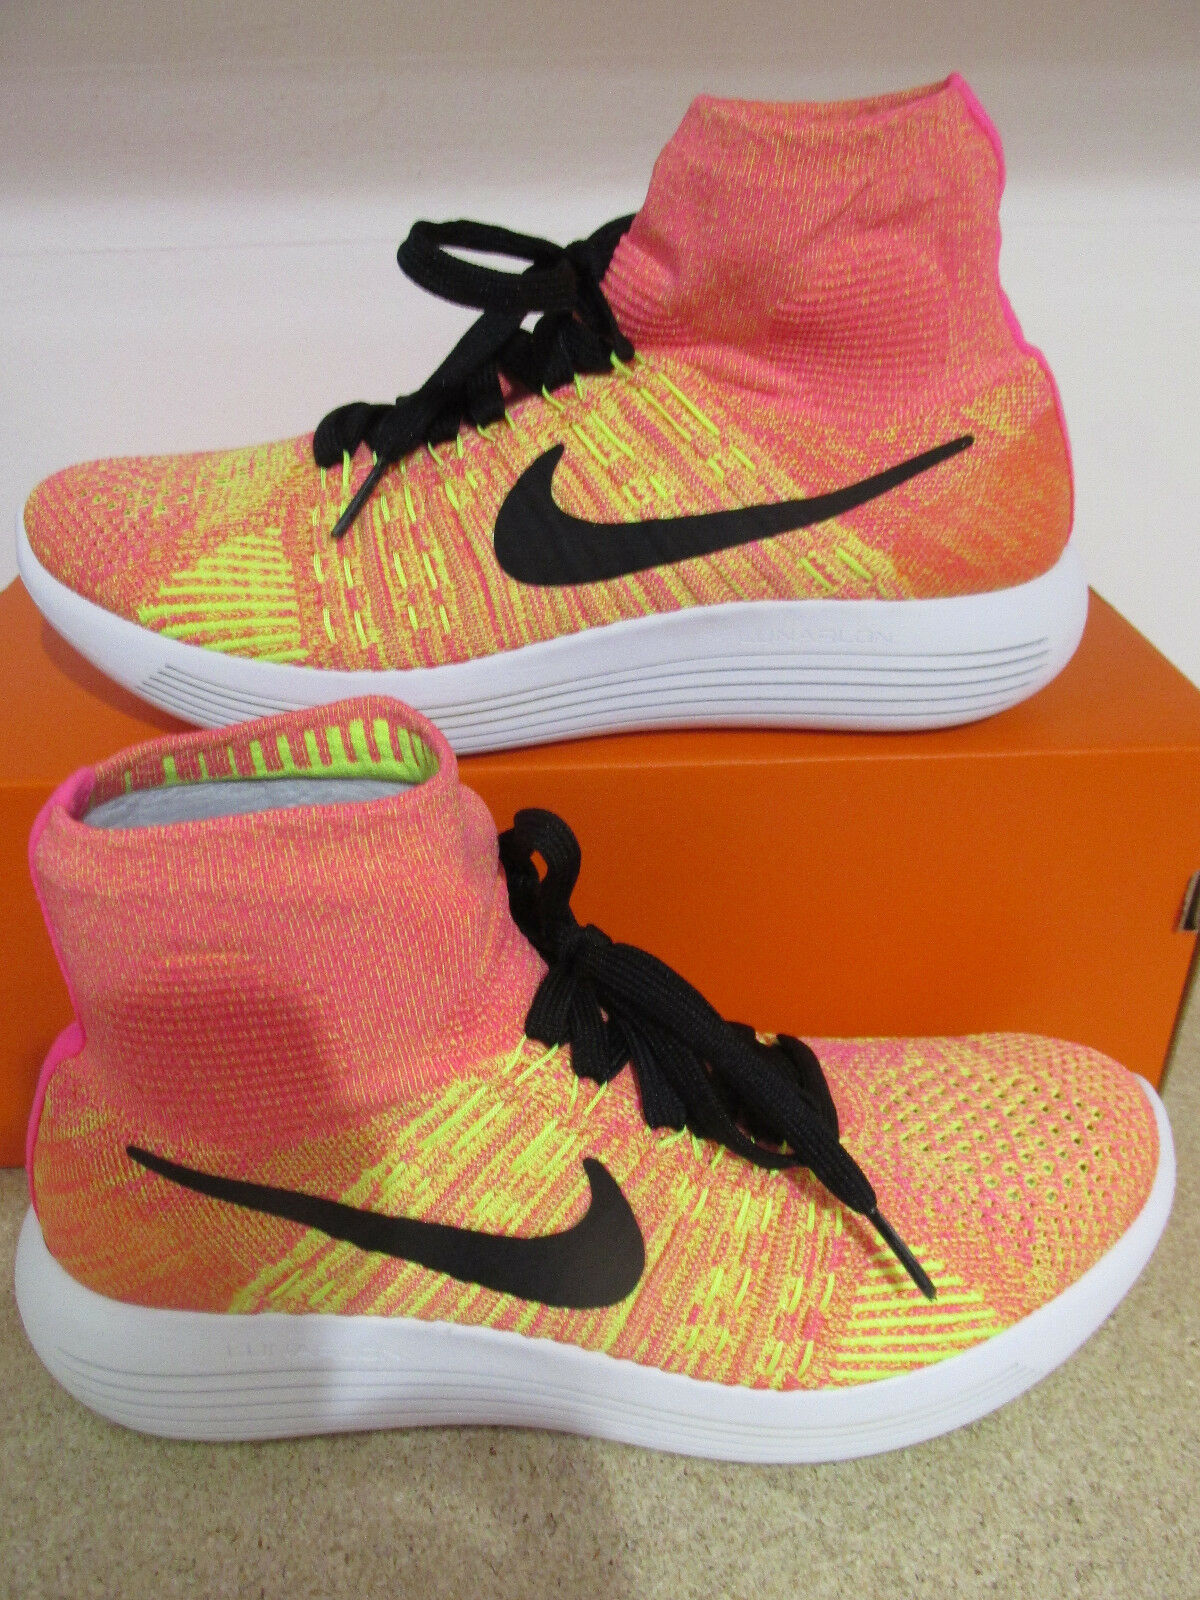 nike mujer 999 lunarepic courir 844861 999 mujer     flyknit oc 76578c